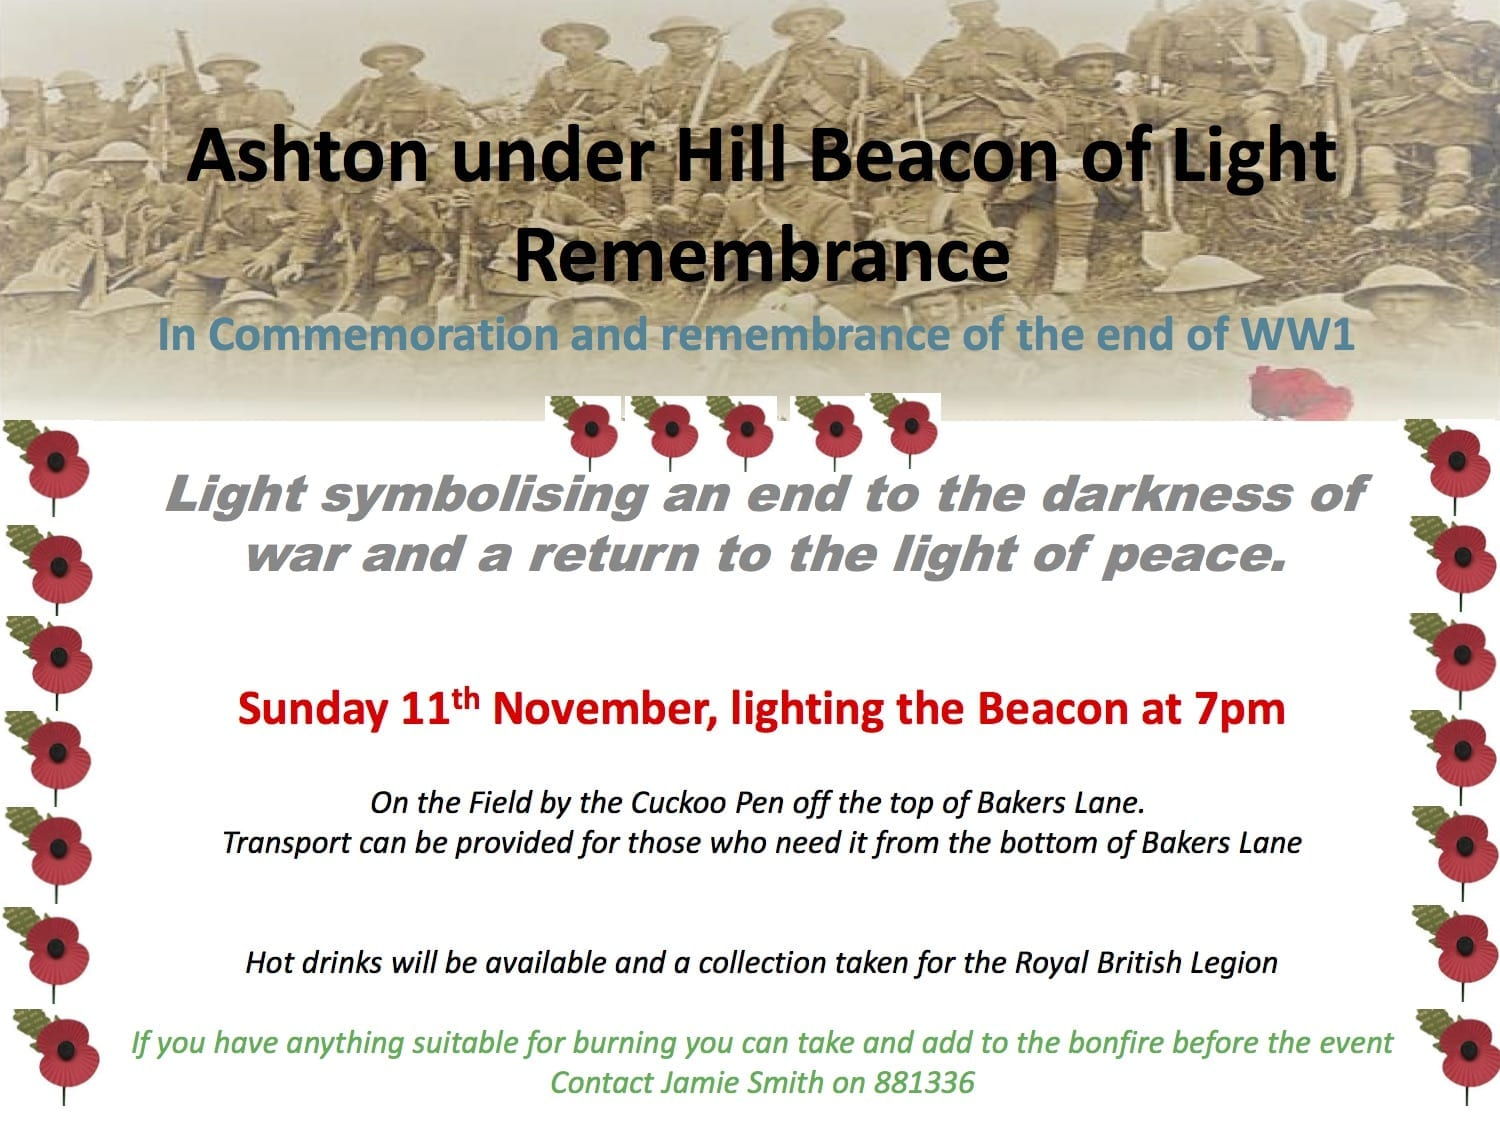 Ashton under Hill Beacon of Light Remembrance